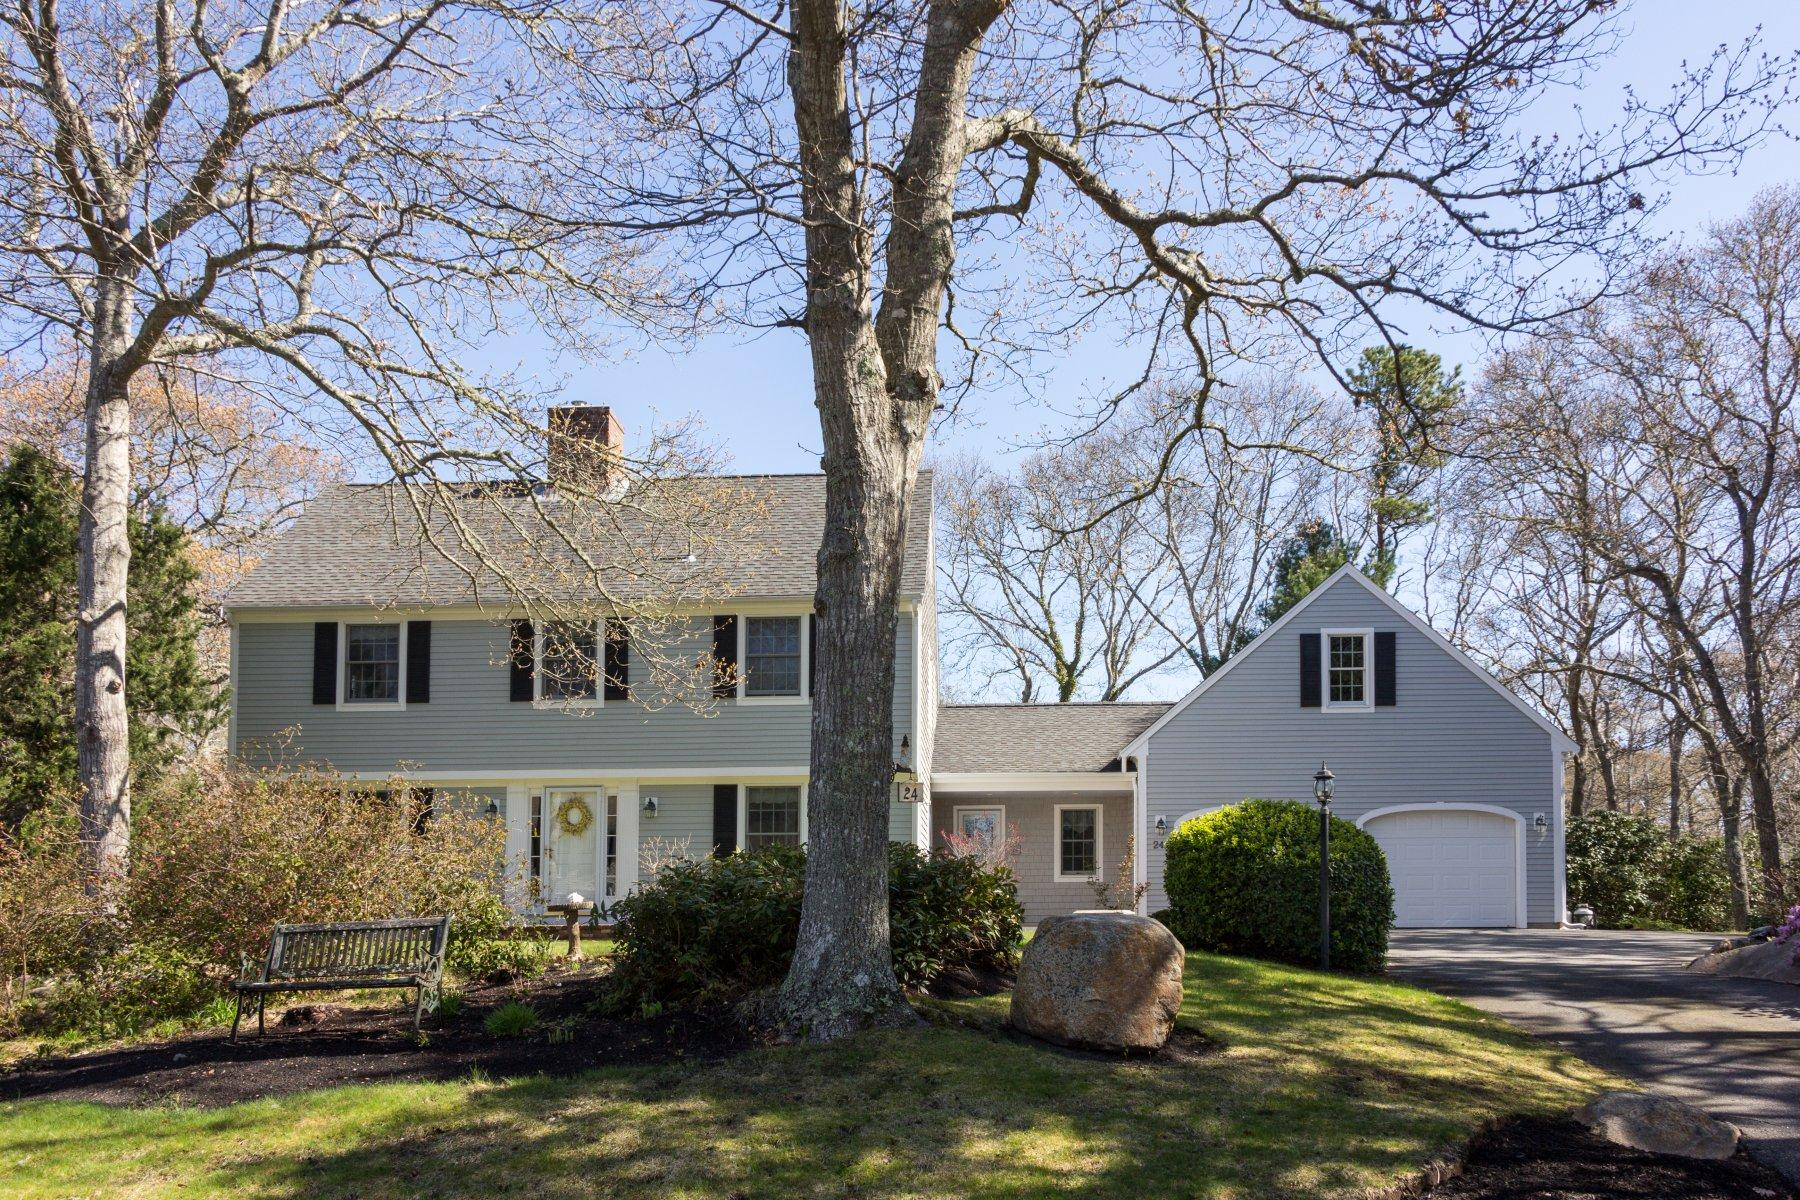 Single Family Home for Active at 24 Bismark Way, Dennis, MA 24 Bismark Way Dennis, Massachusetts 02638 United States